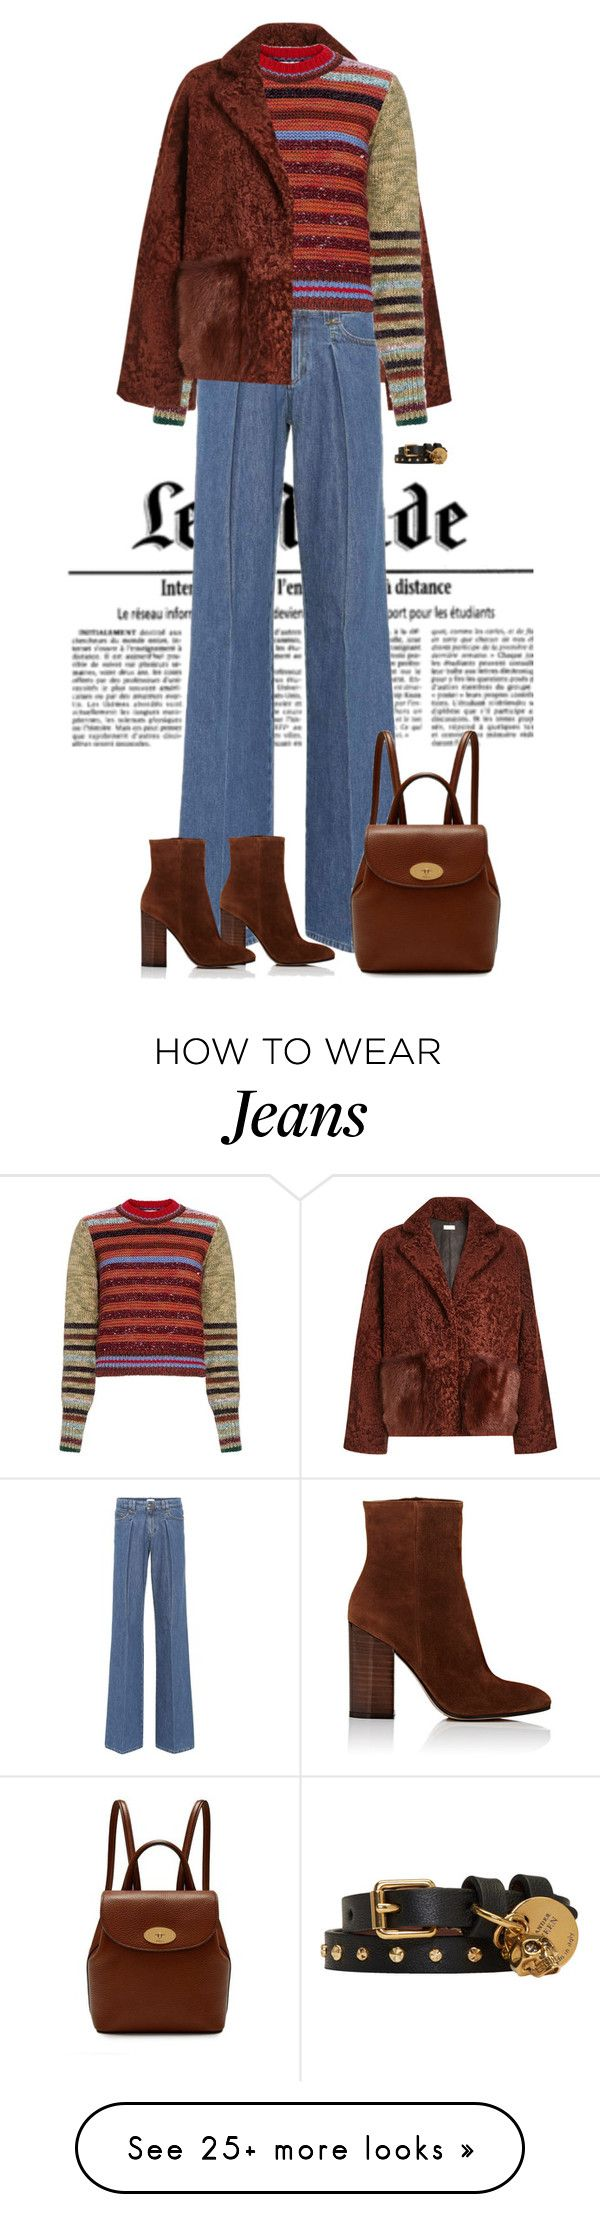 """."" by fashionmonkey1 on Polyvore featuring Utzon, RED Valentino, Gianvito Rossi, Mulberry and Alexander McQueen"